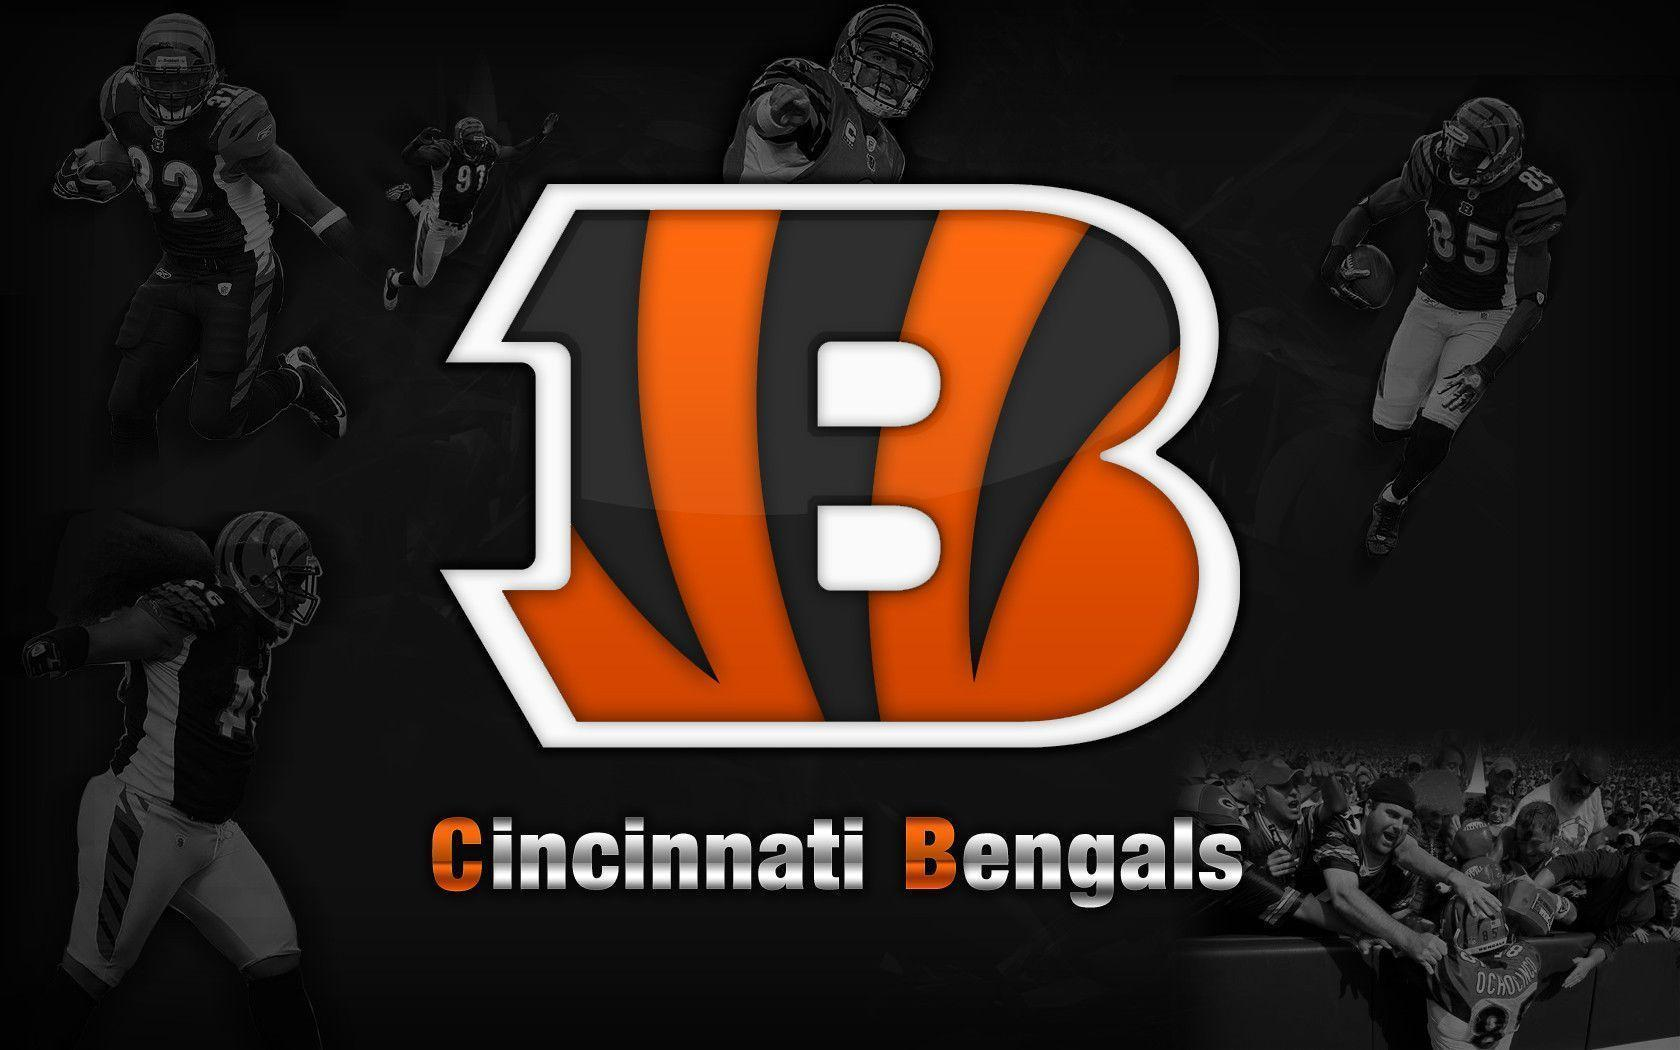 Cincinnati Bengals HD Wallpapers - HD Wallpapers Inn